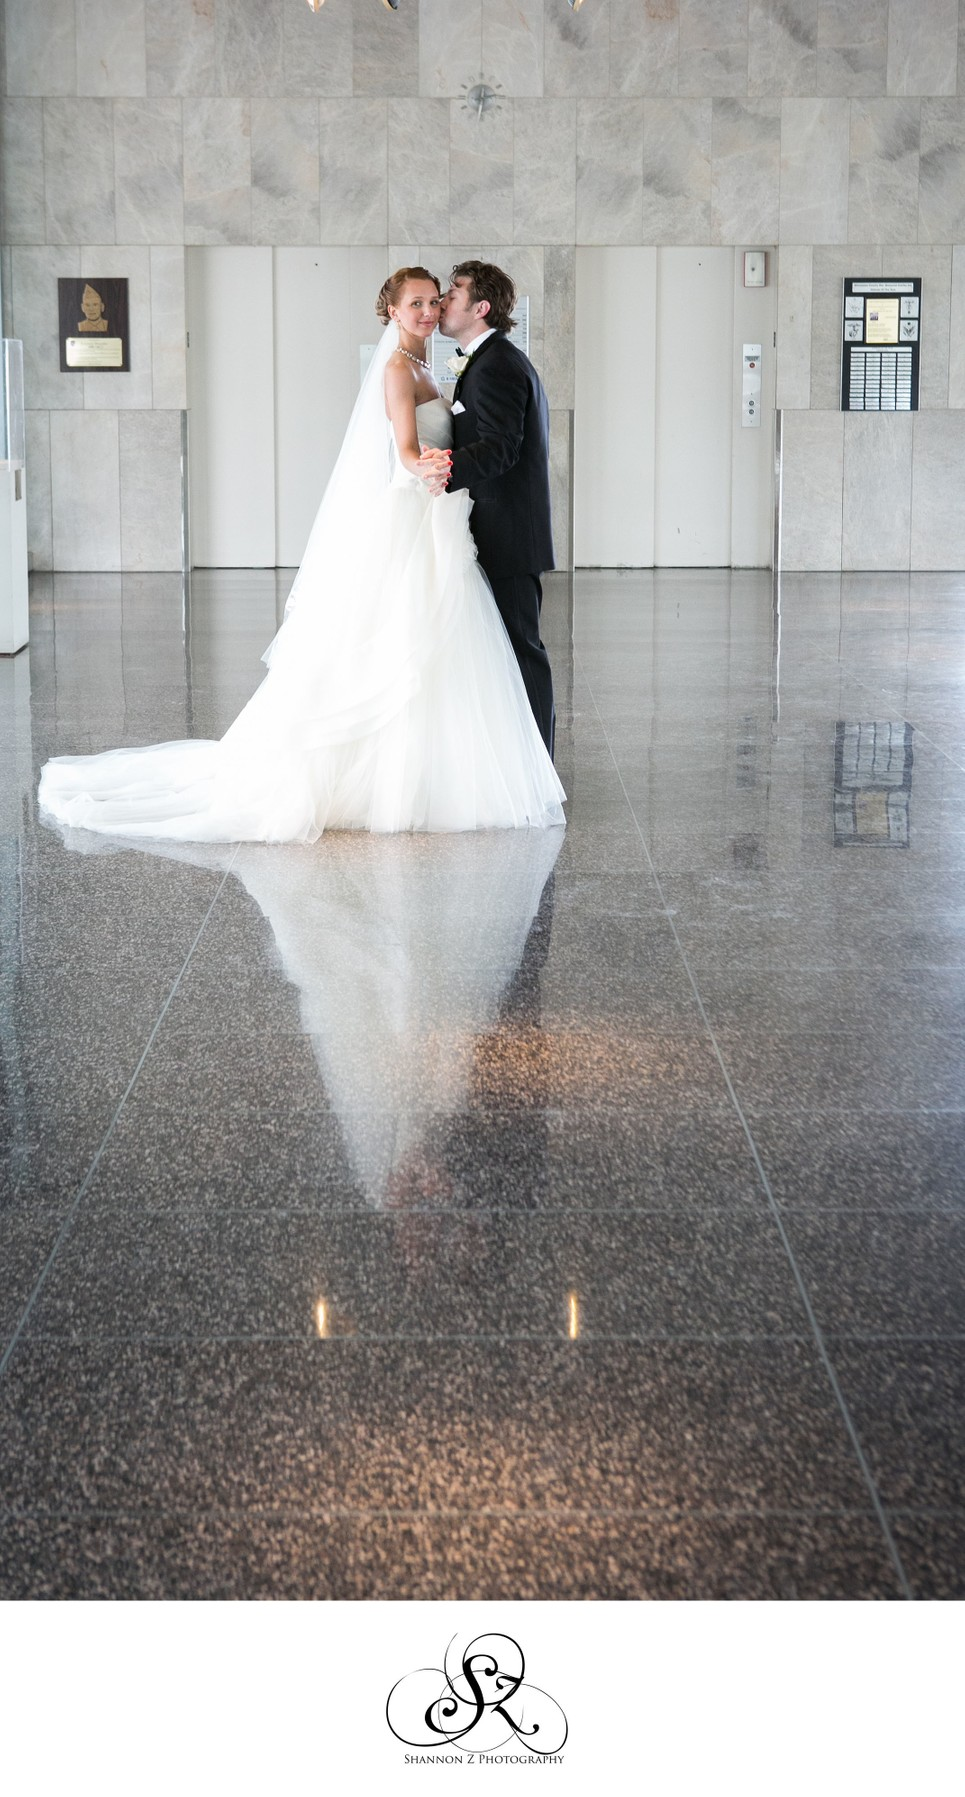 Milwaukee War Memorial Center: Wedding Portrait